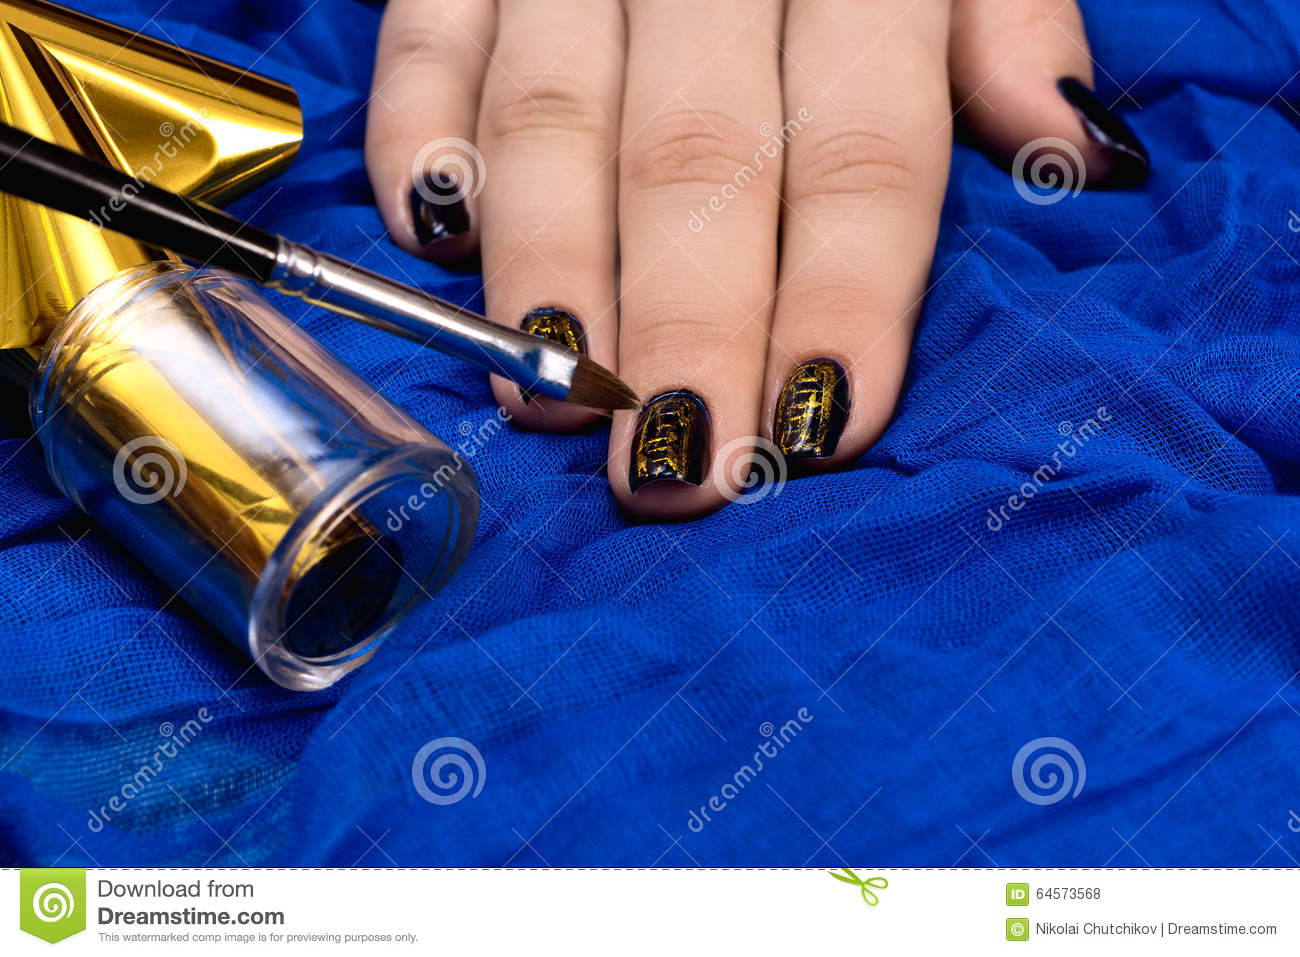 Painting Fingers With Dark Blue Nails Stock Photo - Image of design ...